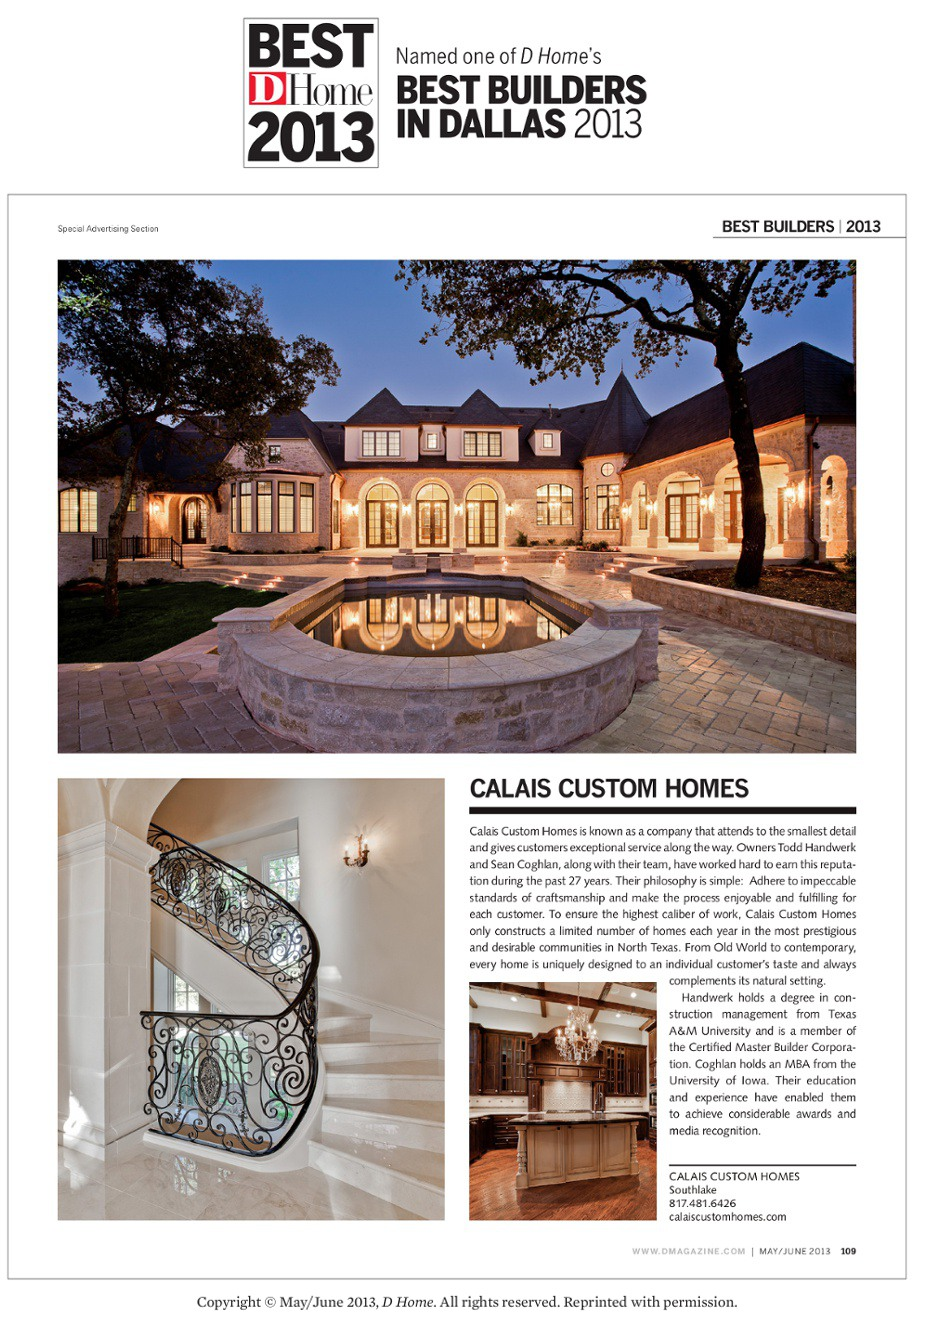 2013 DHome Best Builder Award Article